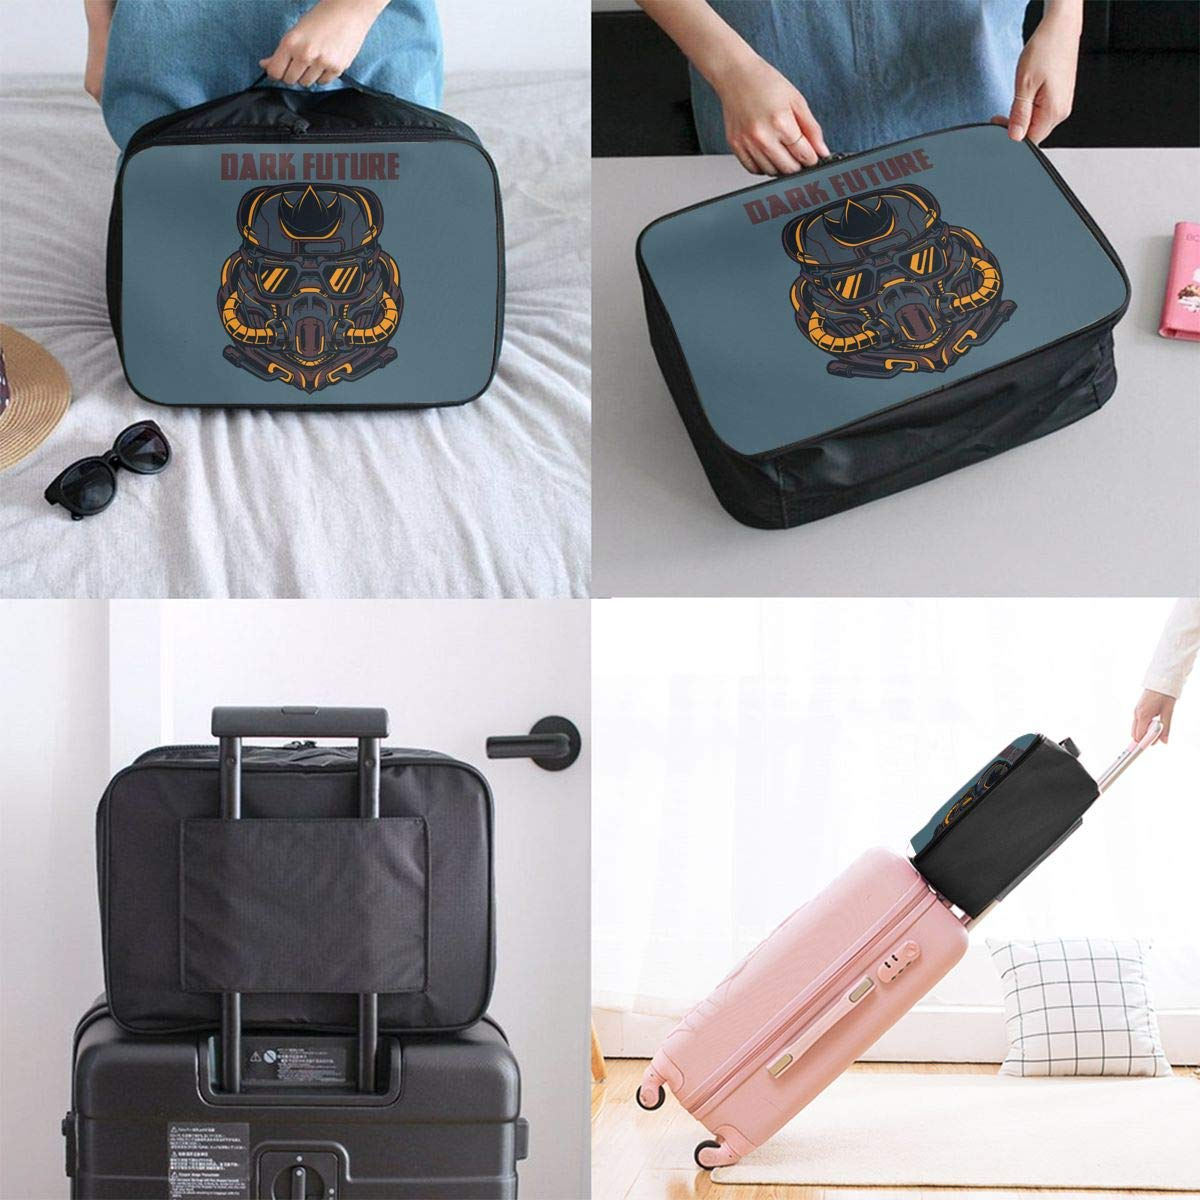 Travel Duffel Bag Waterproof Lightweight Large Capacity Luggage Bag Dark Future Portable Carry On Luggage Bag For Travel Camping Sport White